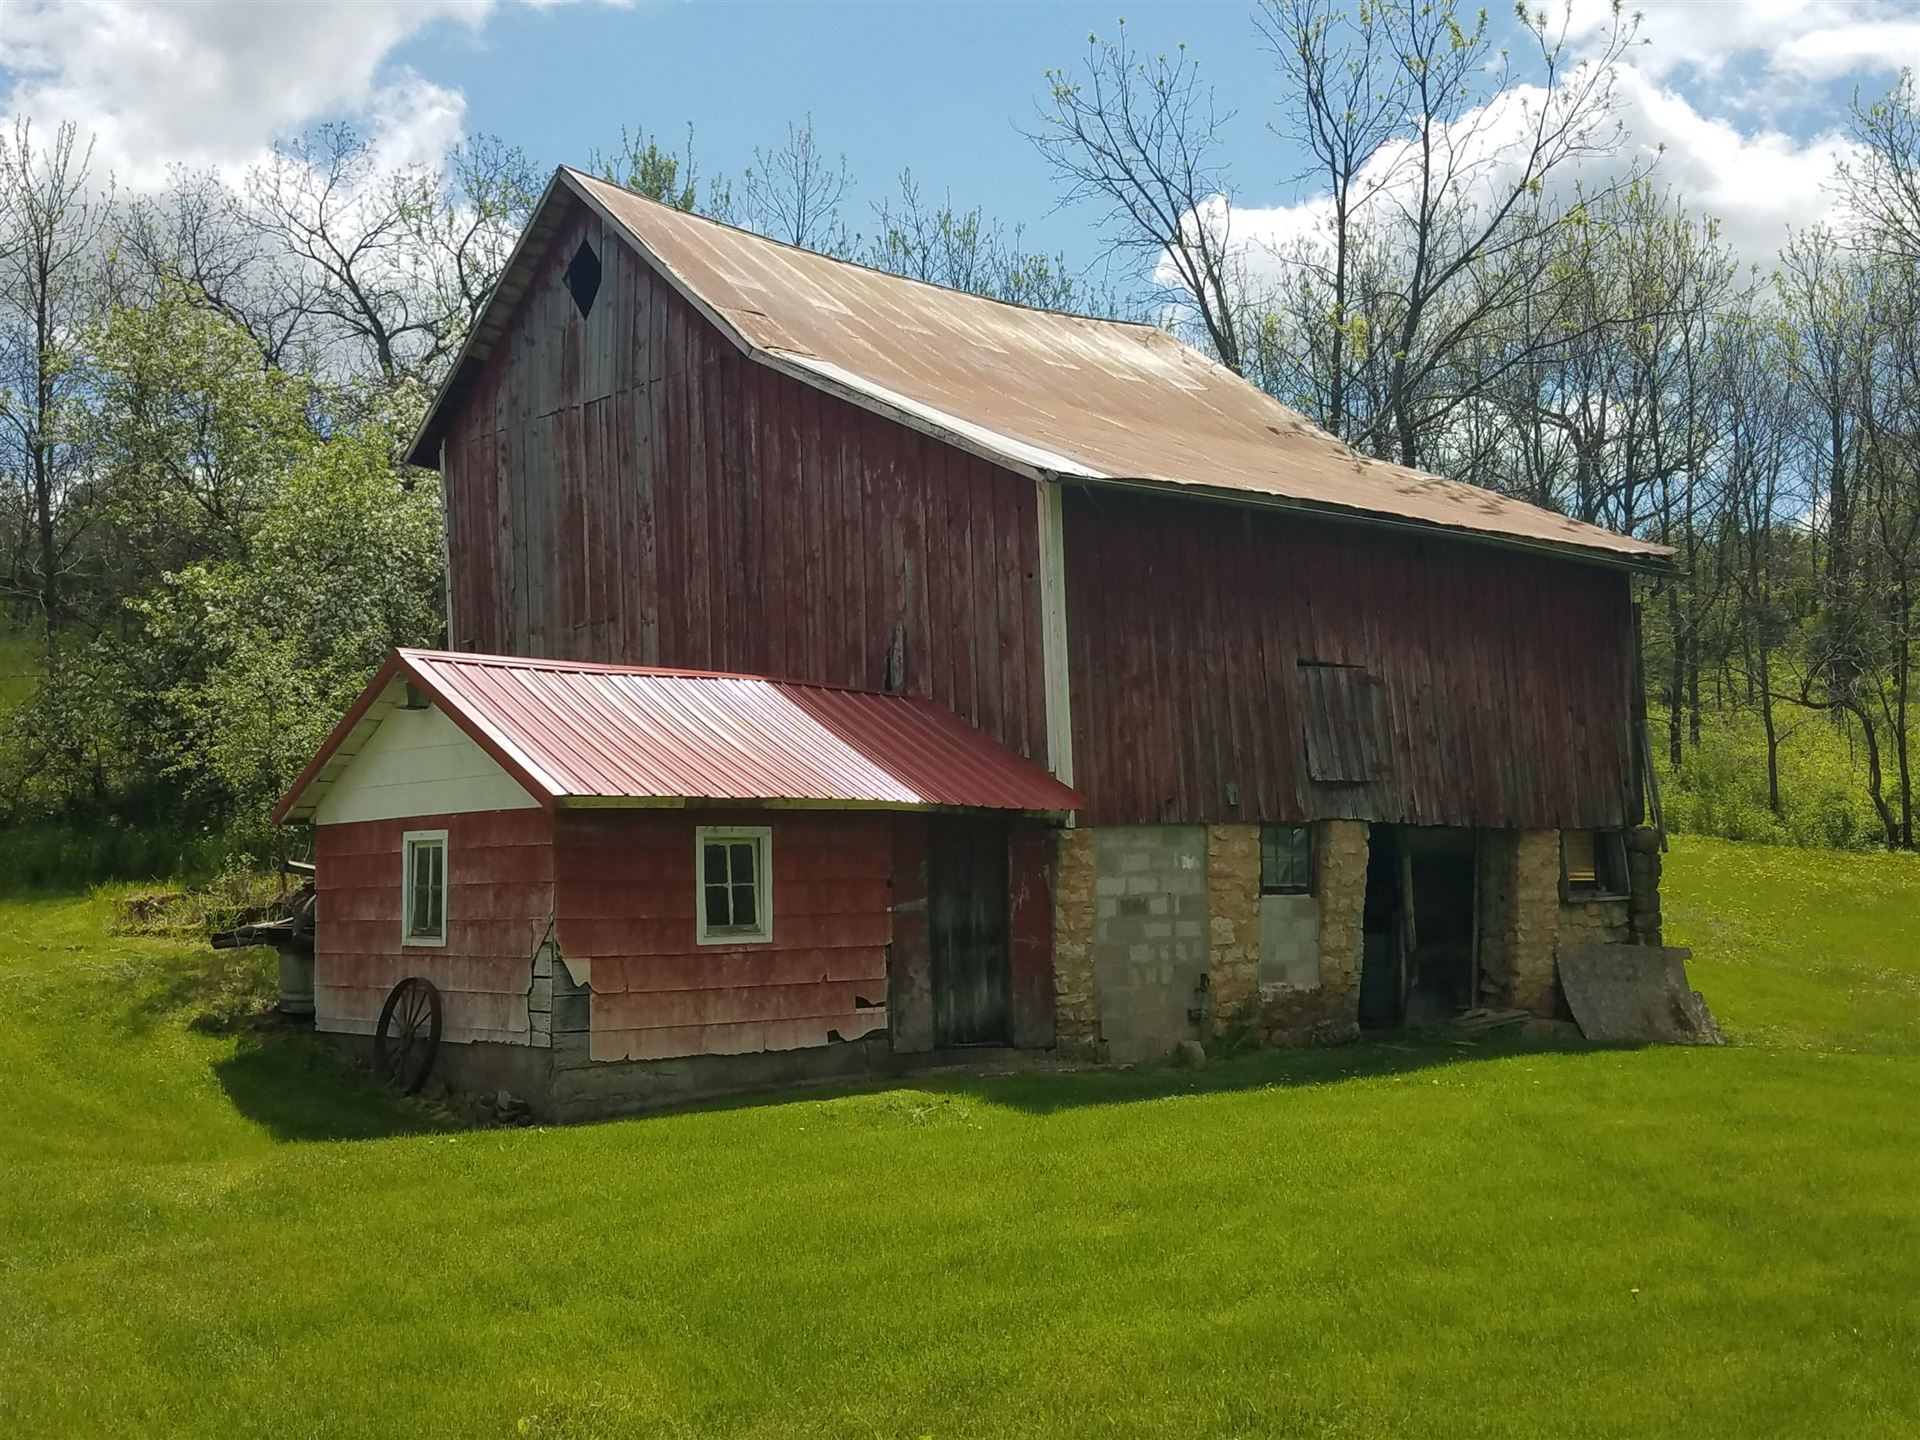 S5434 County Road NN, Viroqua, WI 54665 - MLS#: 1639396